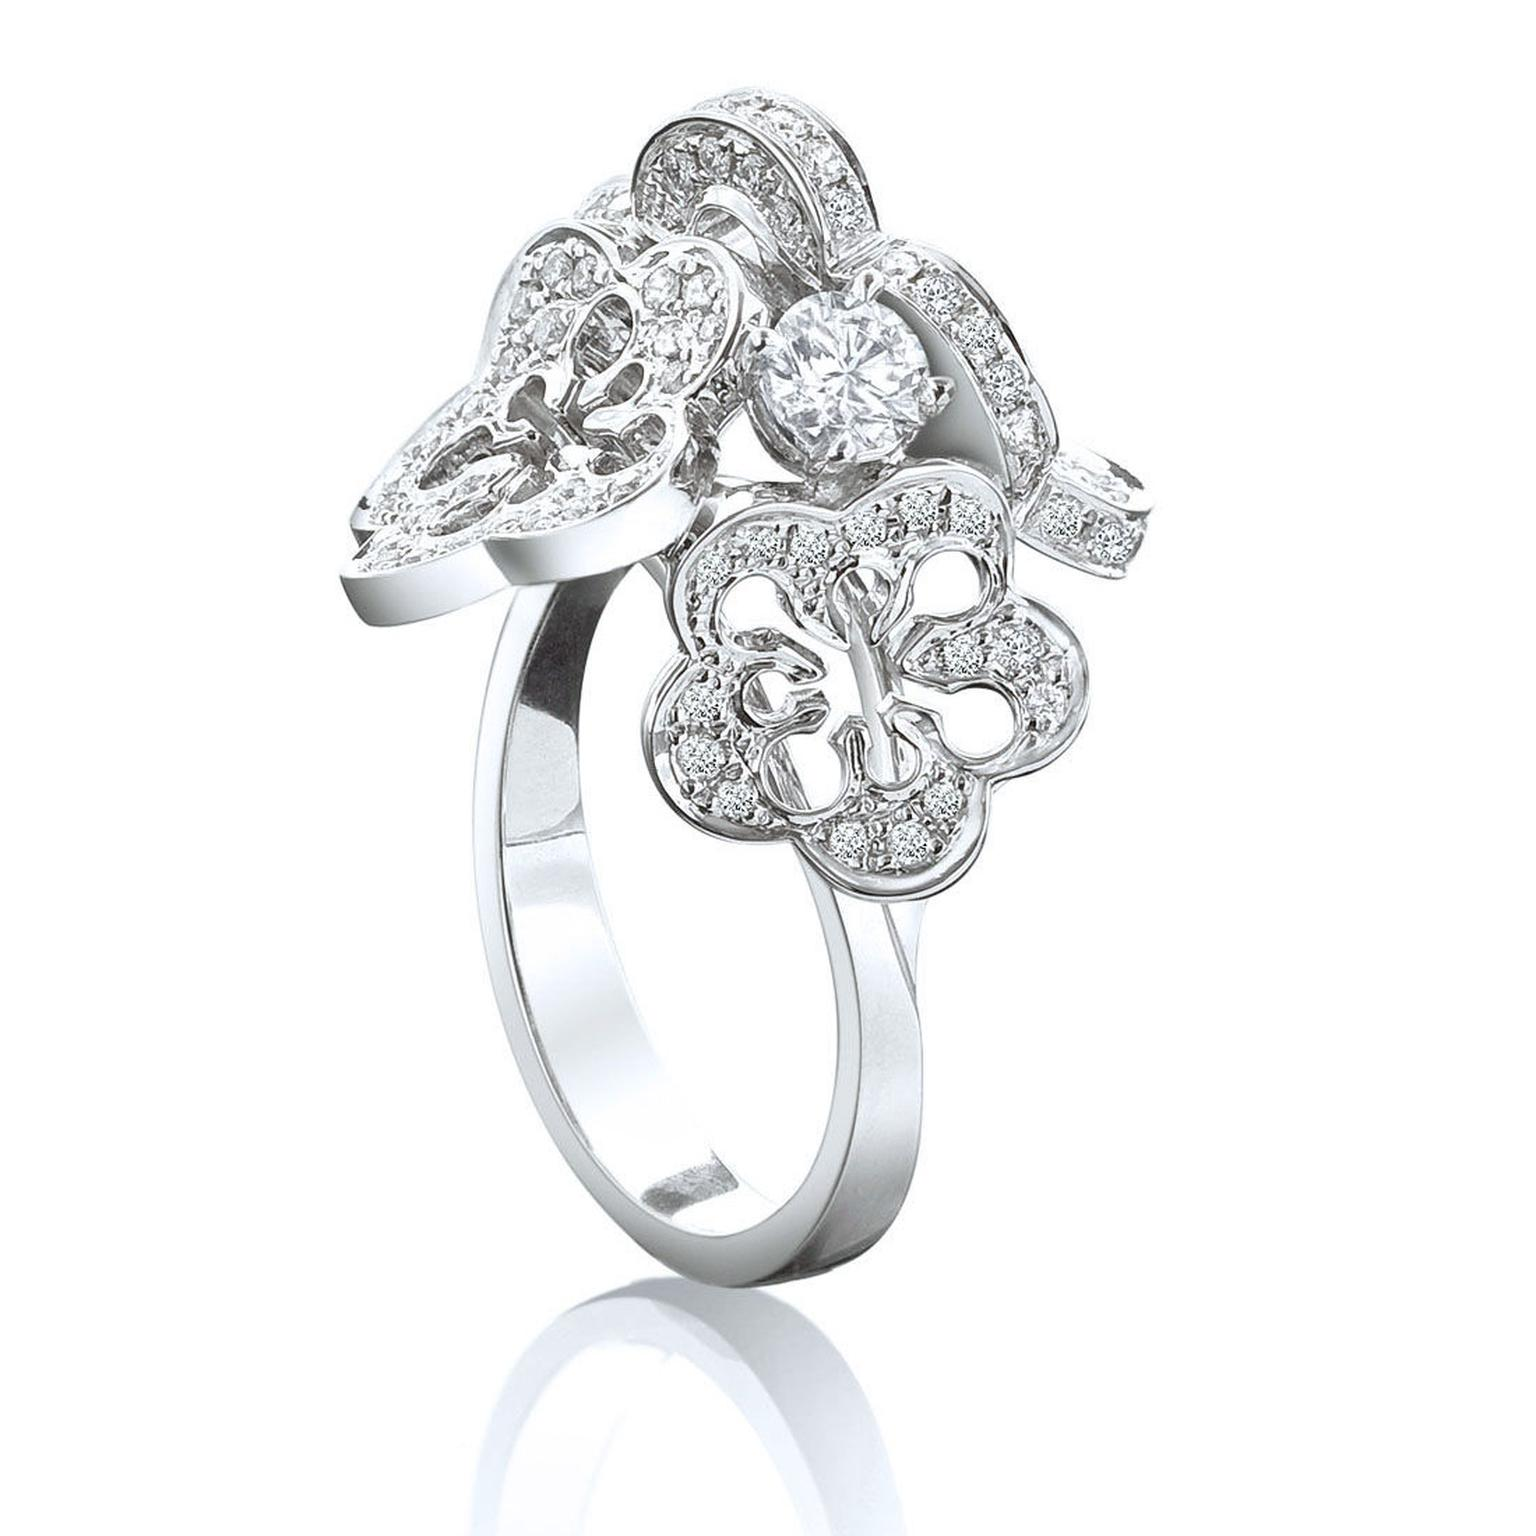 Boodles cluster ring in white gold and diamonds